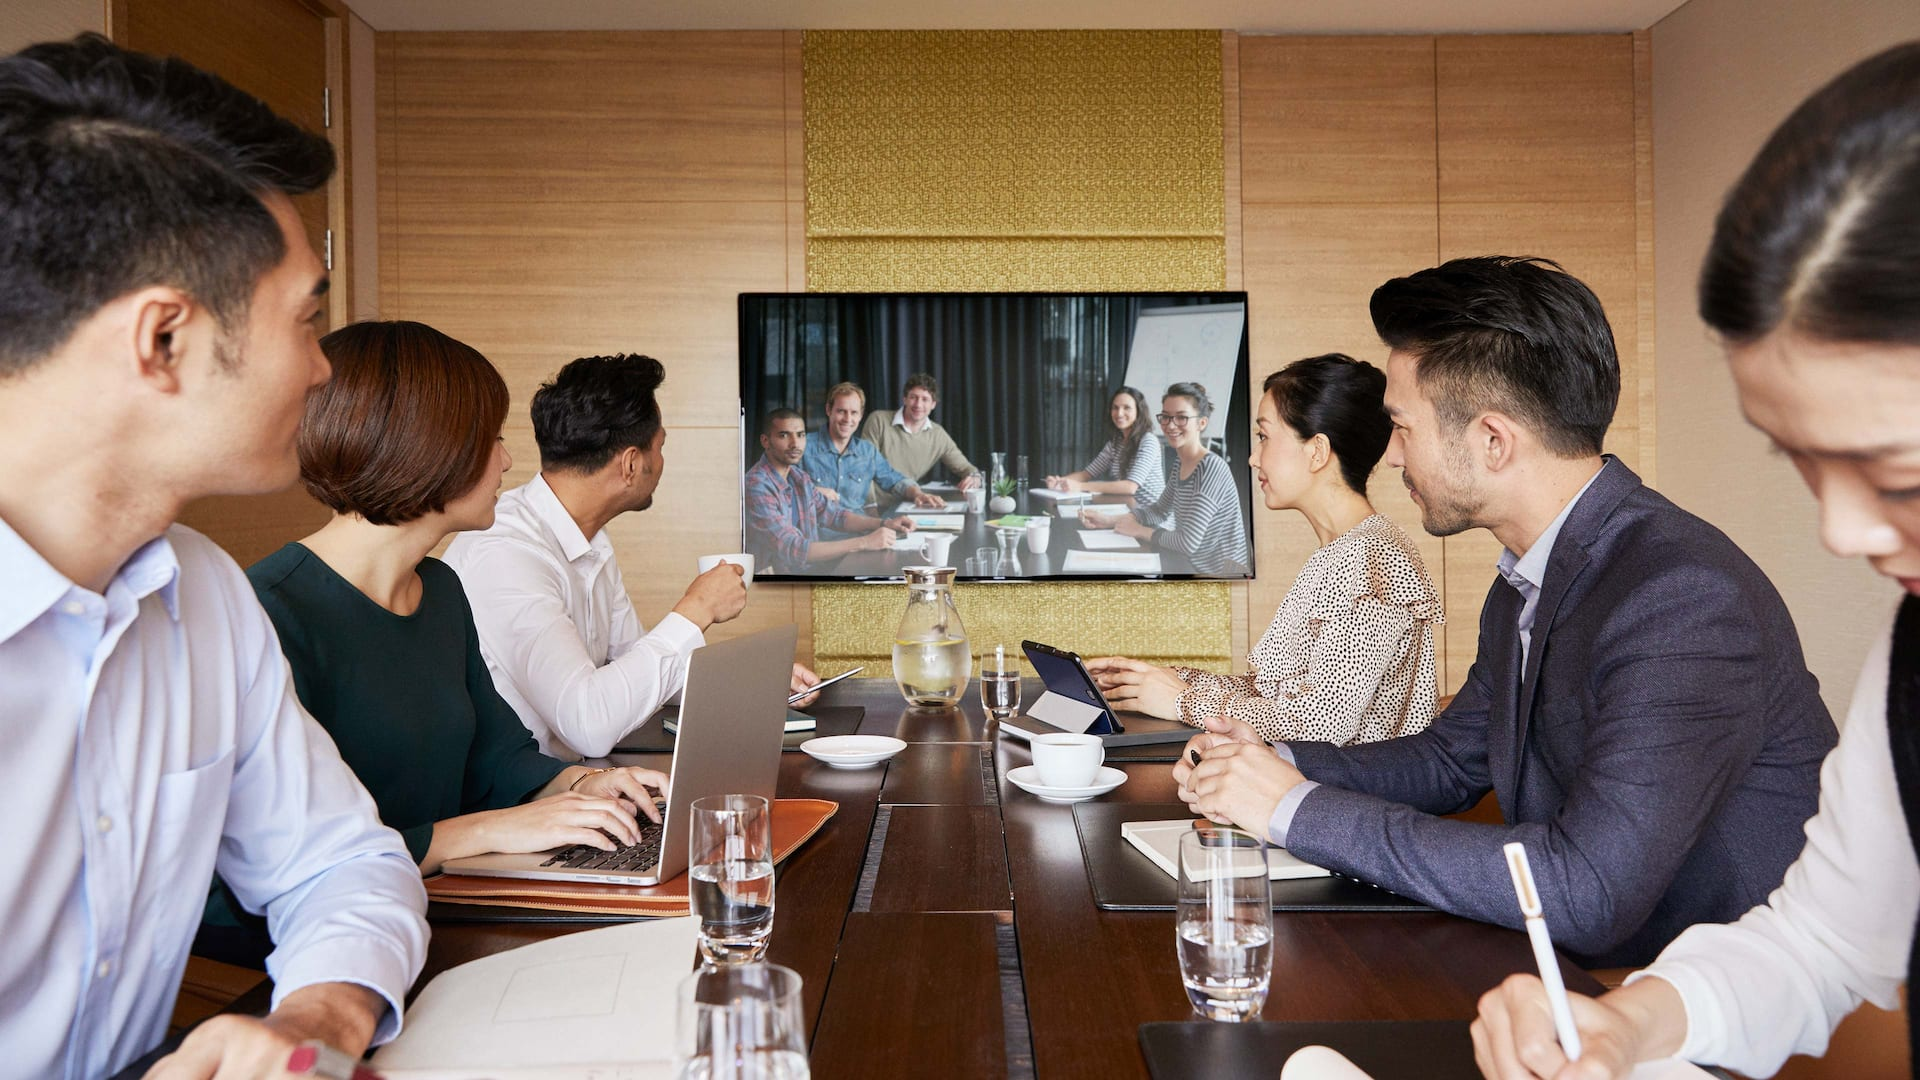 Conference meeting